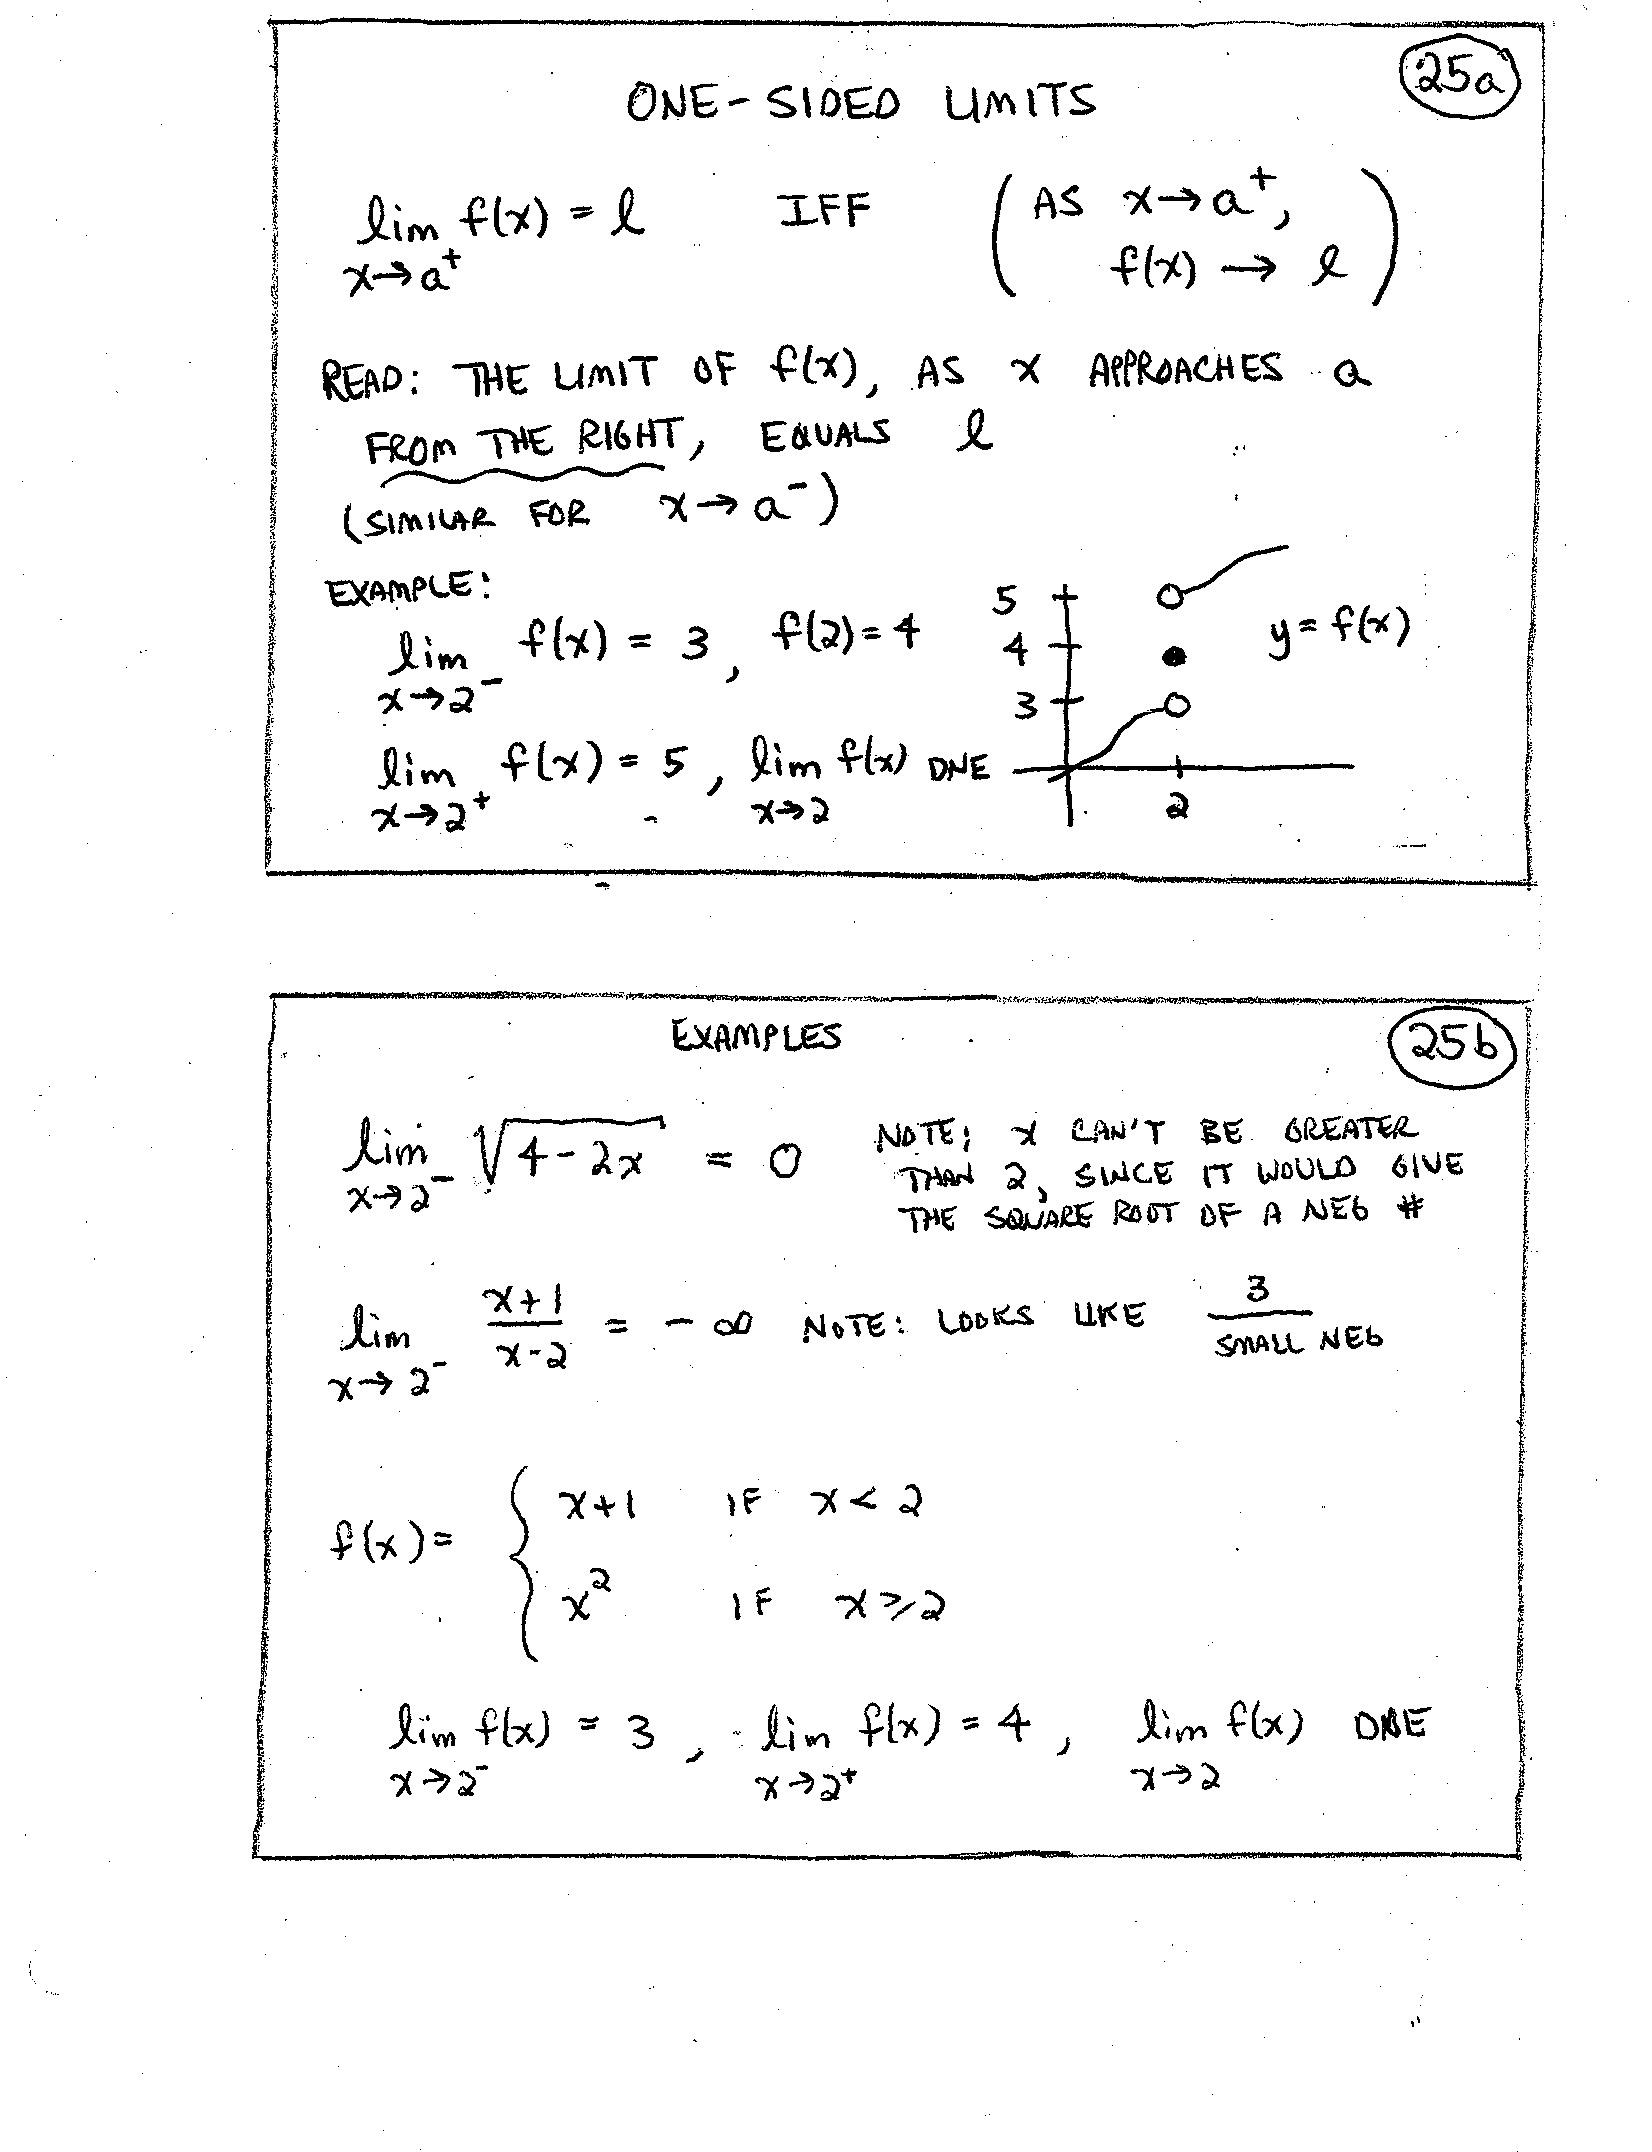 Worksheet On One Sided Limits